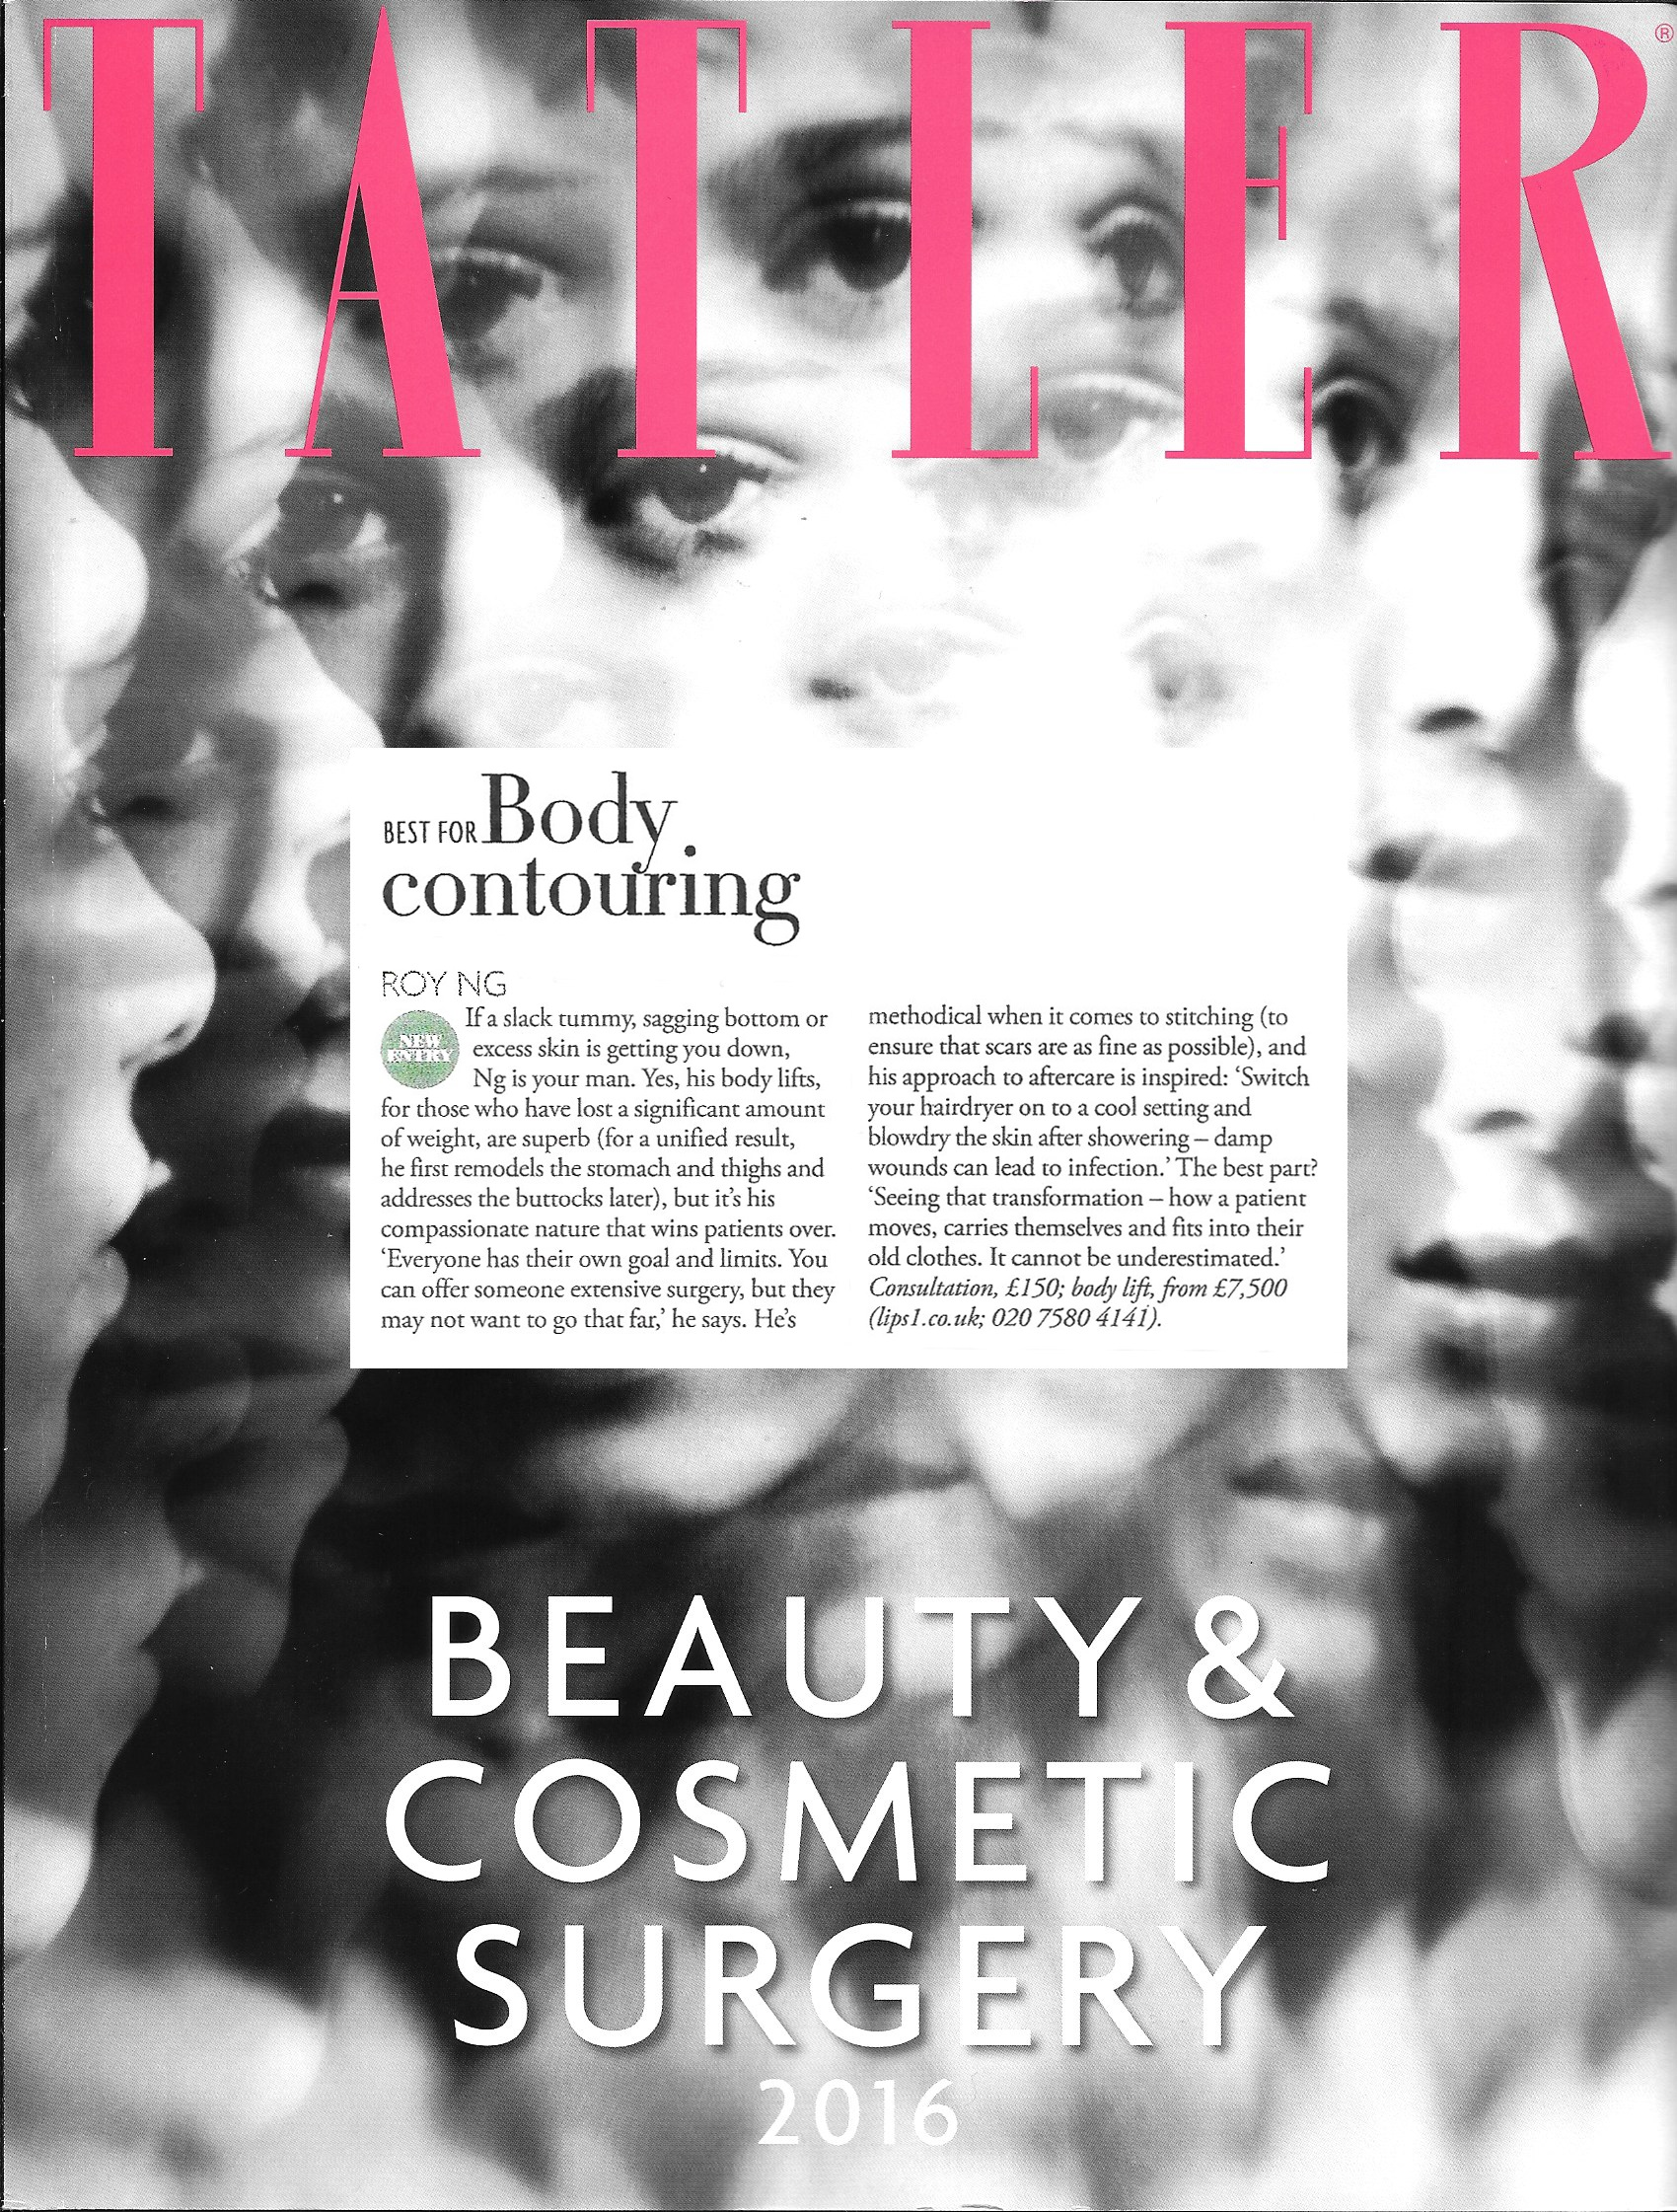 Top cosmetic surgeon - Tatler 2016